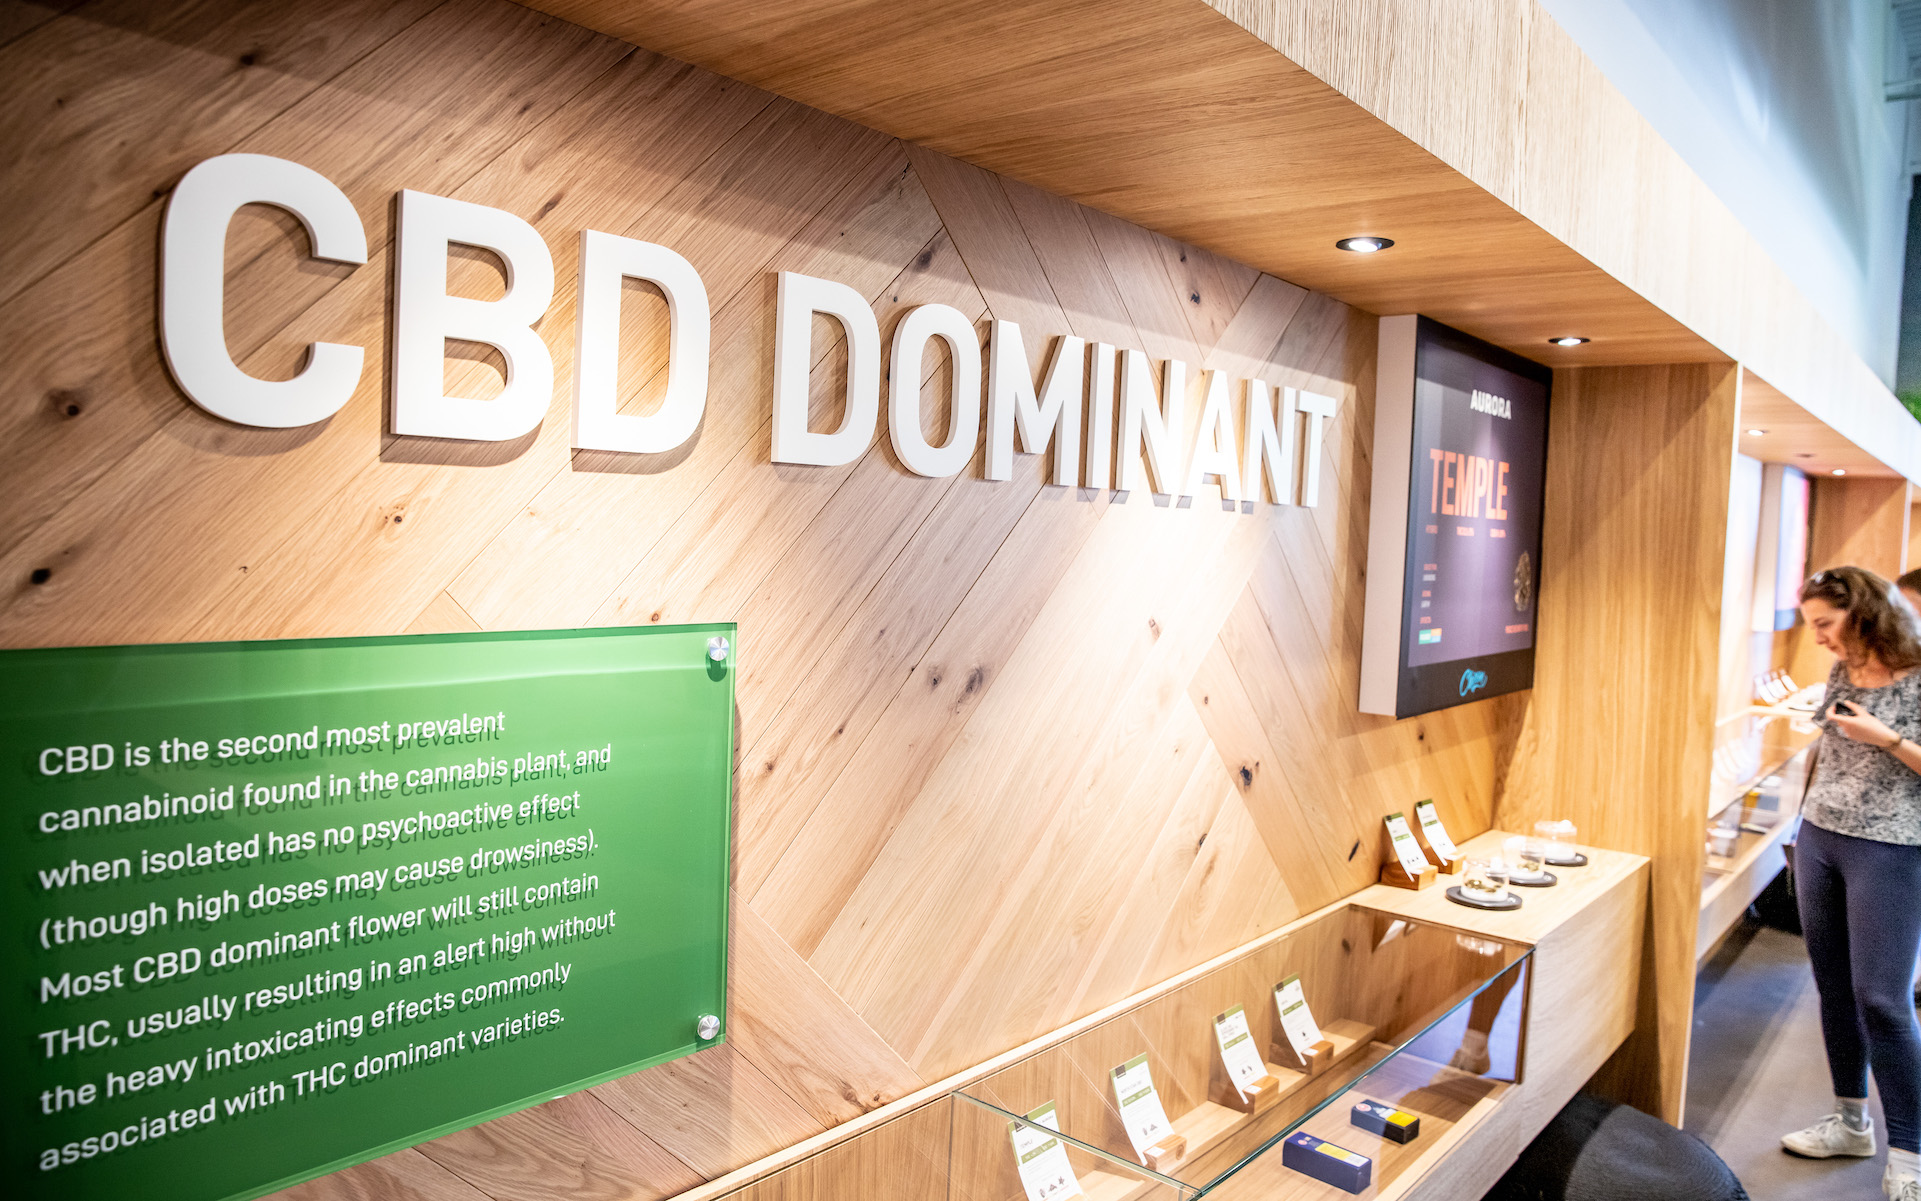 How THC helps CBD without high; CBD dominant retail experience